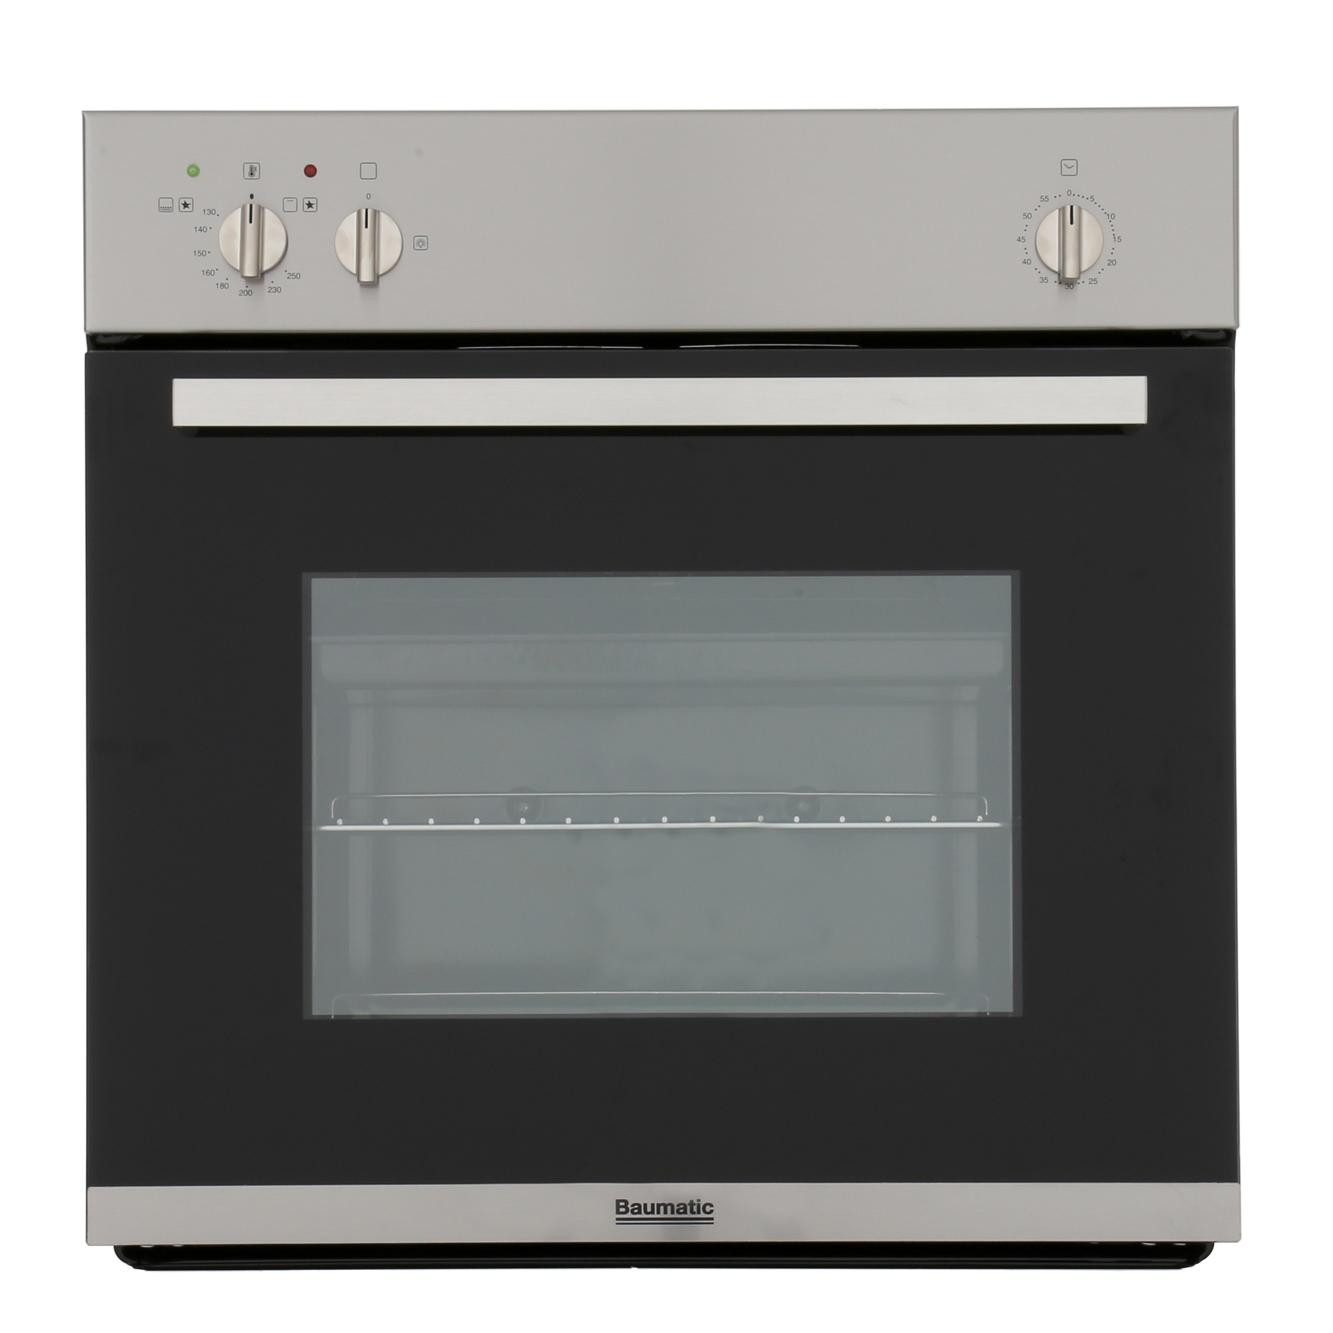 Baumatic Vantage BO610.5SS Stainless Steel Single Built In Gas Oven